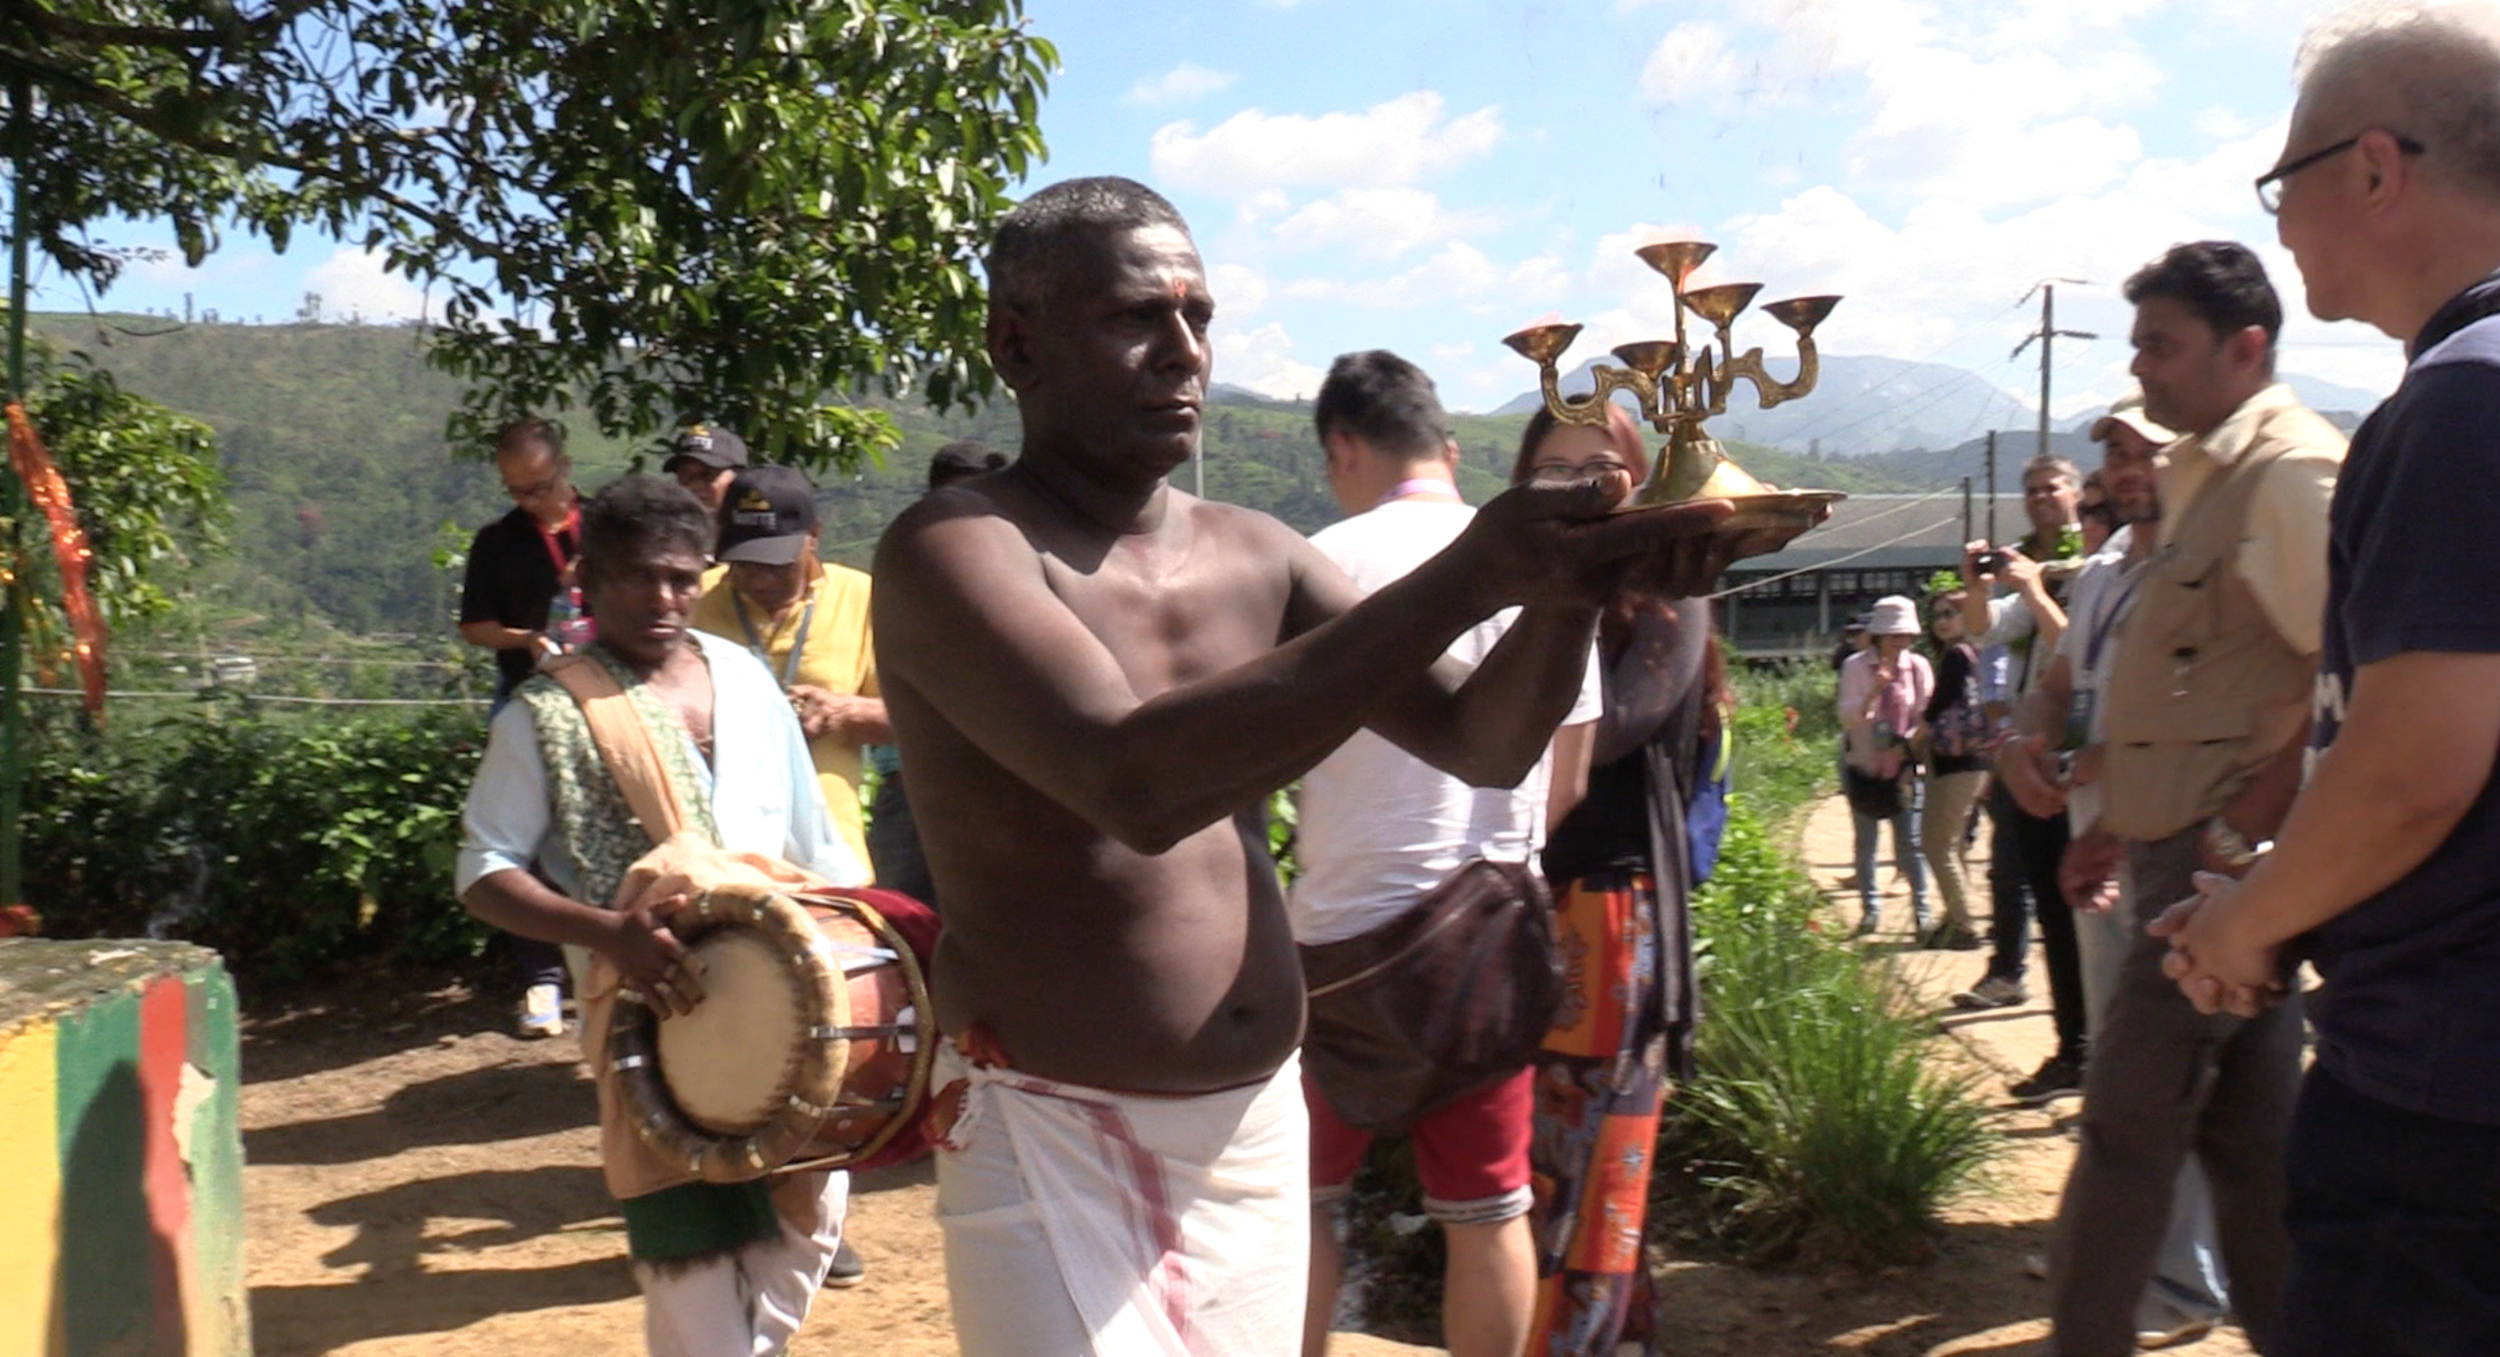 Traditions are strong in Sri Lanka